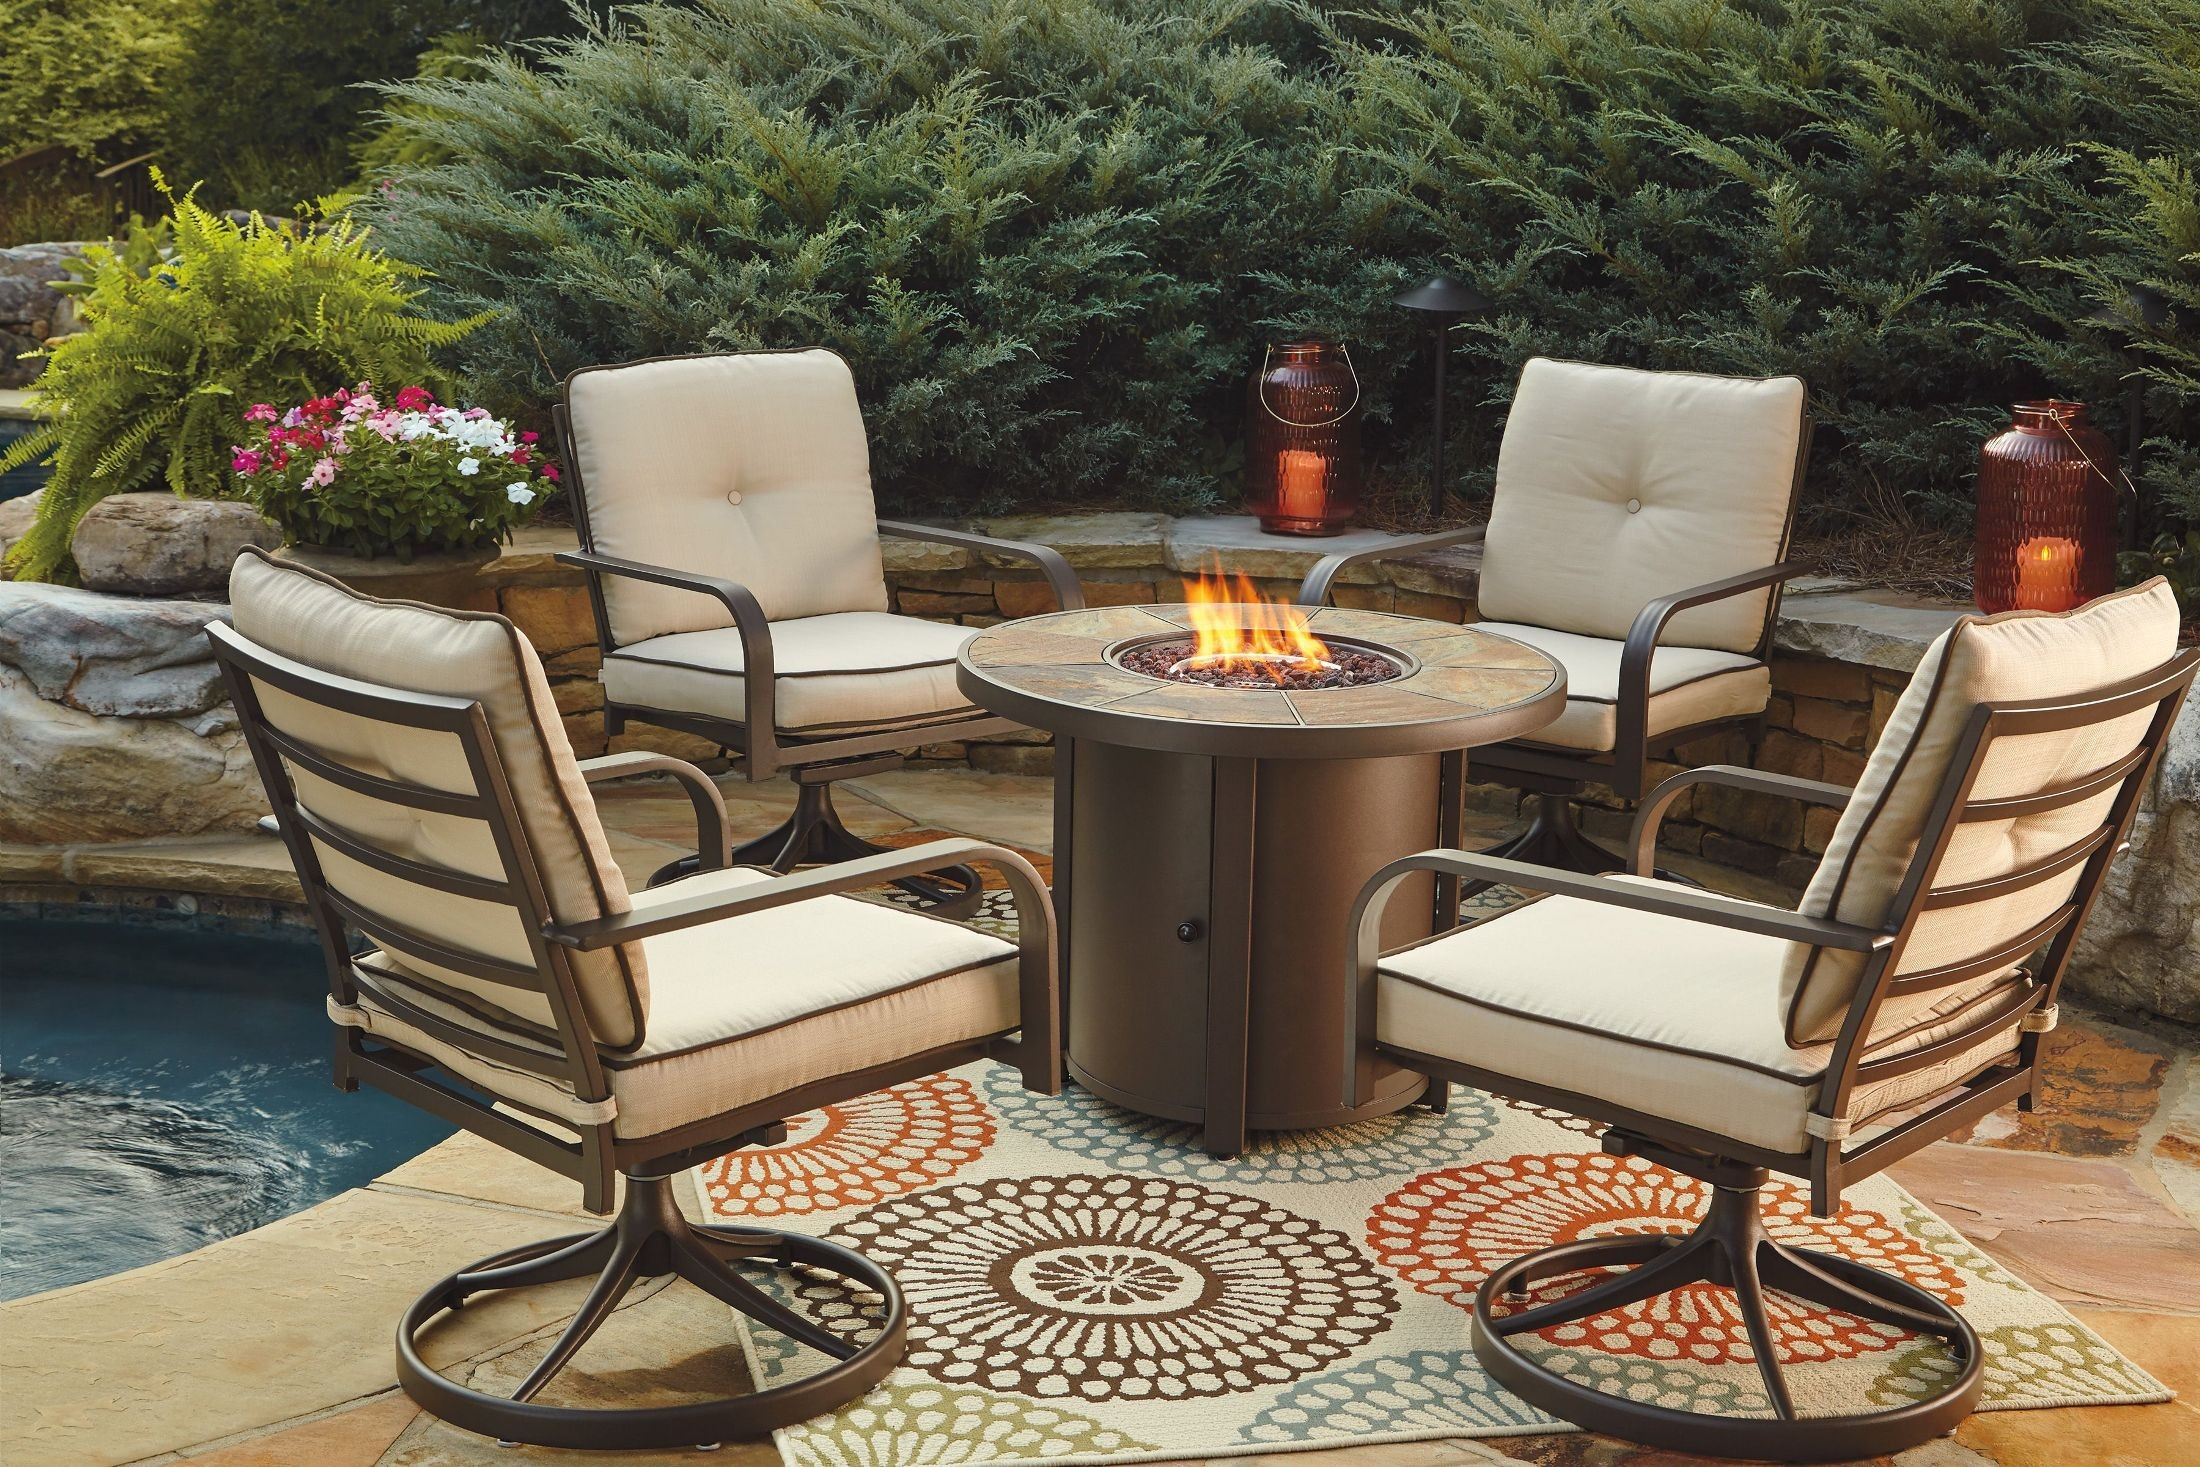 Predmore Beige and Brown Round Fire Pit Outdoor Dining Set ...